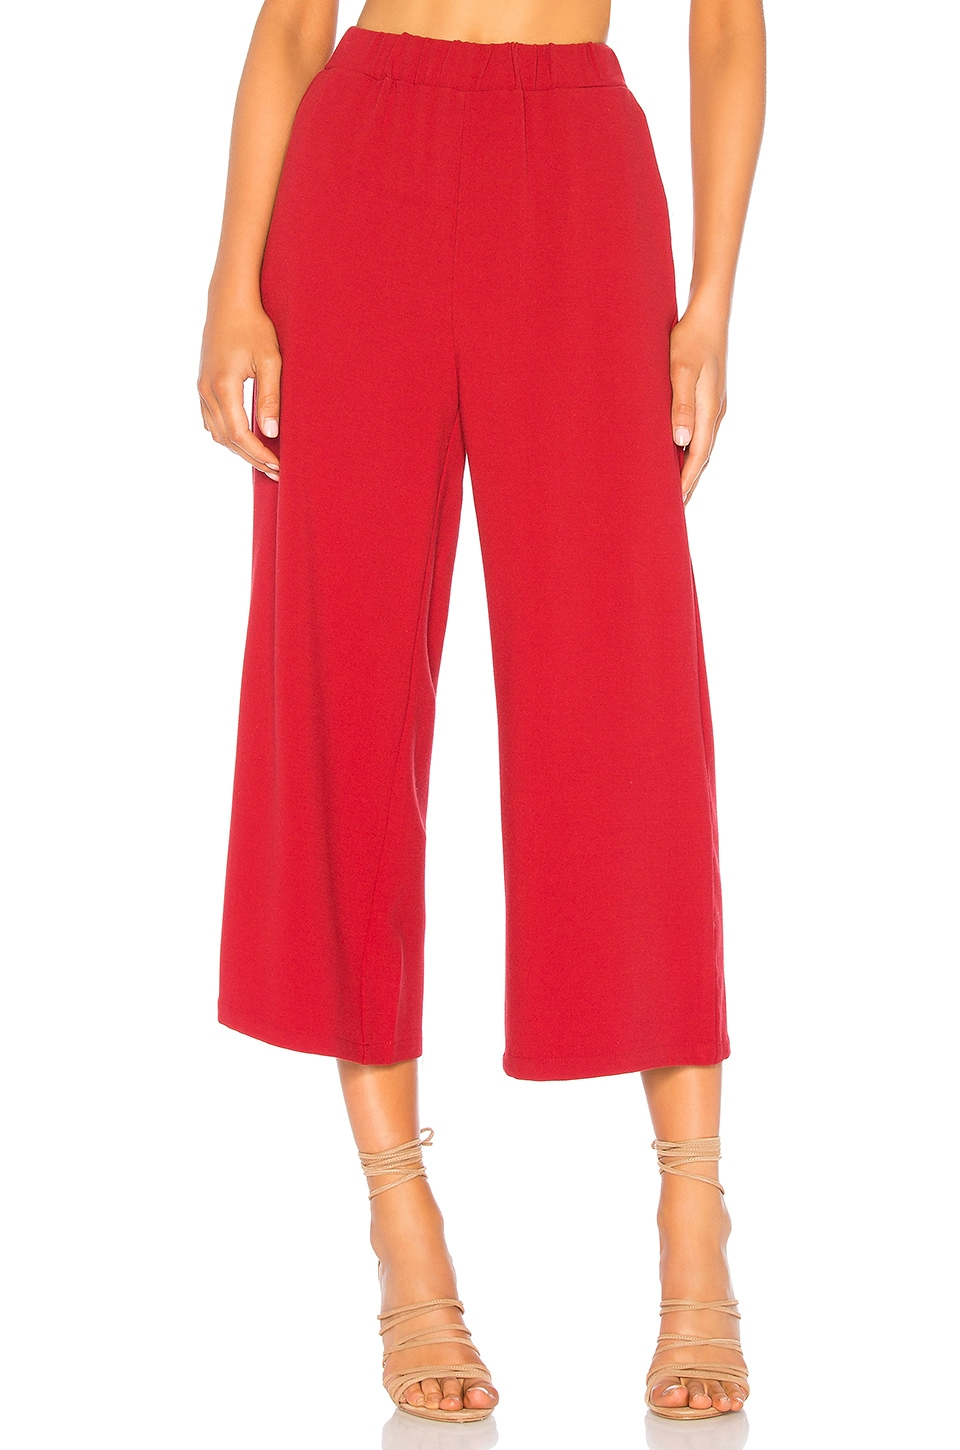 Dr. Denim Abel Trouser in Blood Red